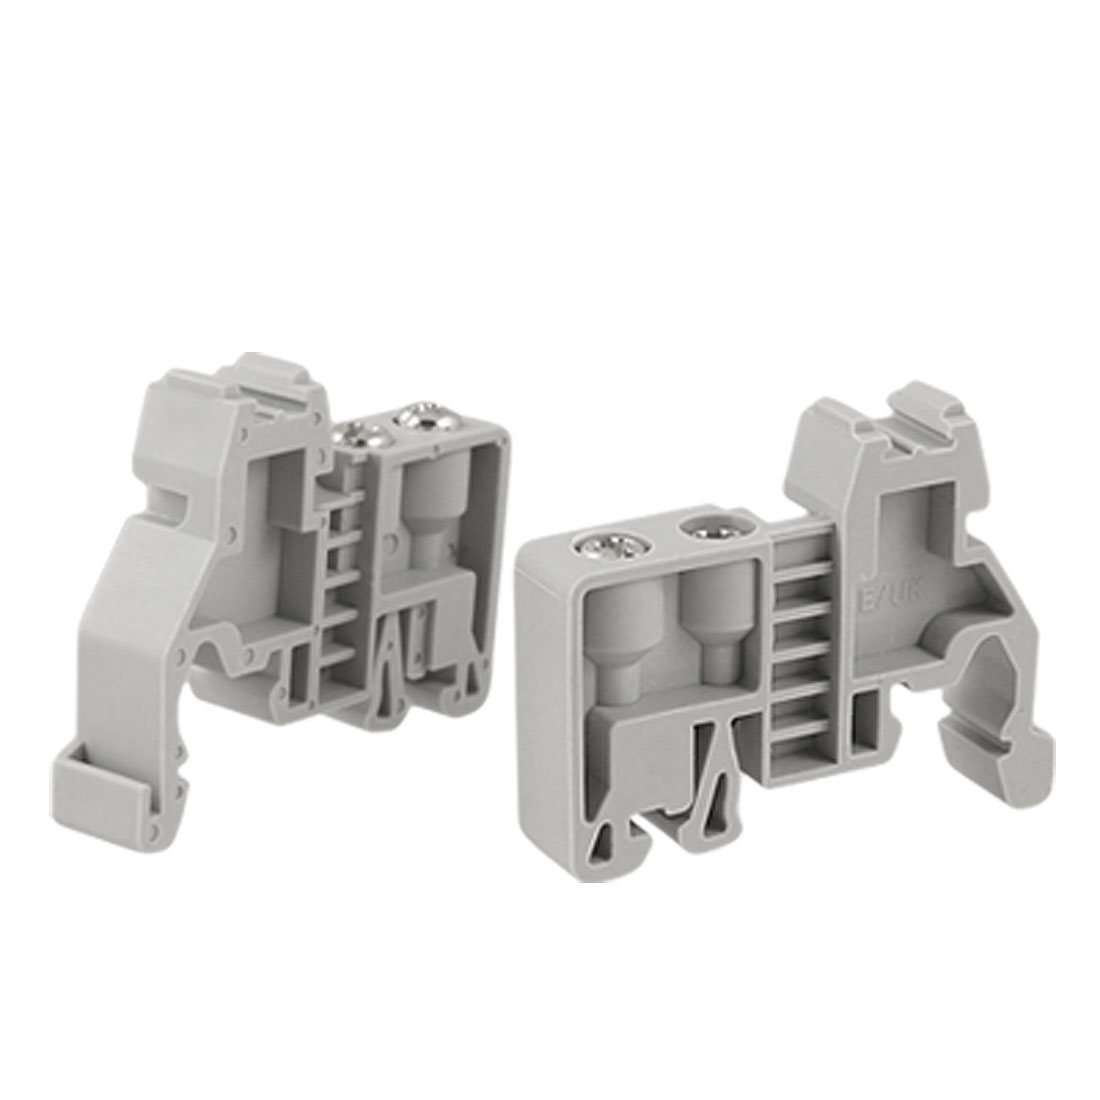 2 Pcs 35mm Din Rail Screw Fixed Terminal Block End Stopper Clamps